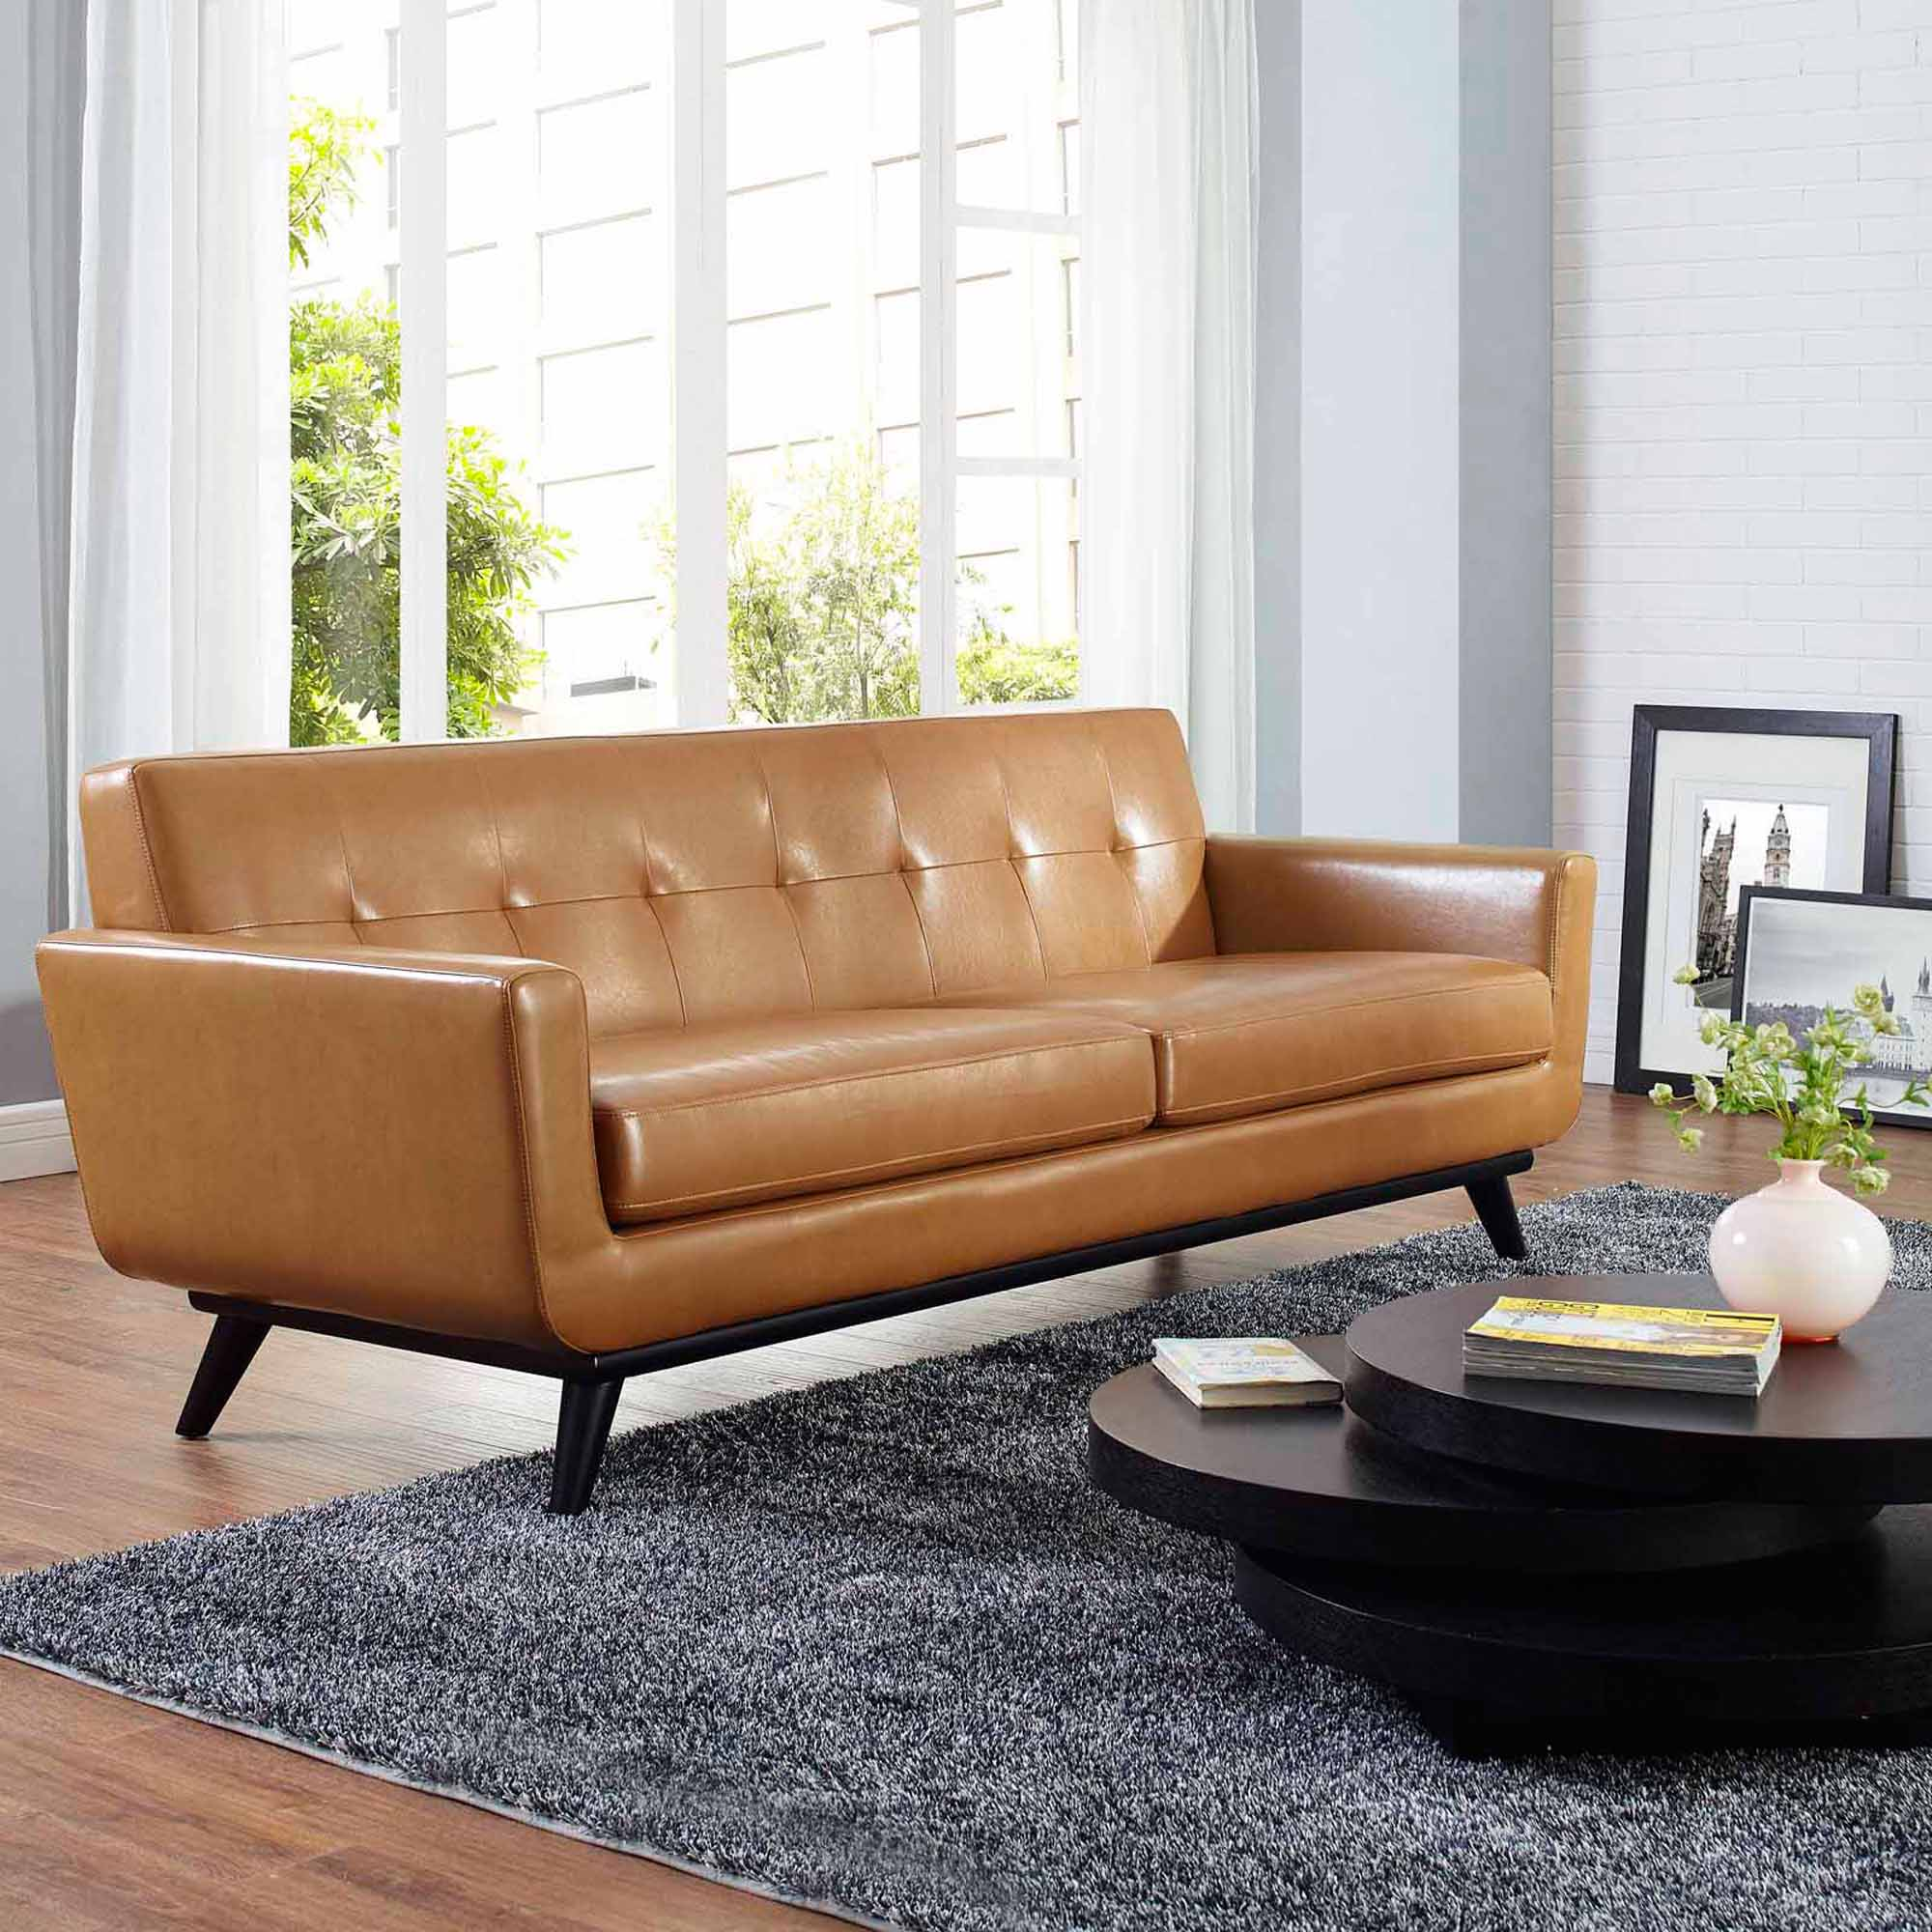 modway engage bonded leather sofa with wood legs multiple colors walmartcom. Interior Design Ideas. Home Design Ideas